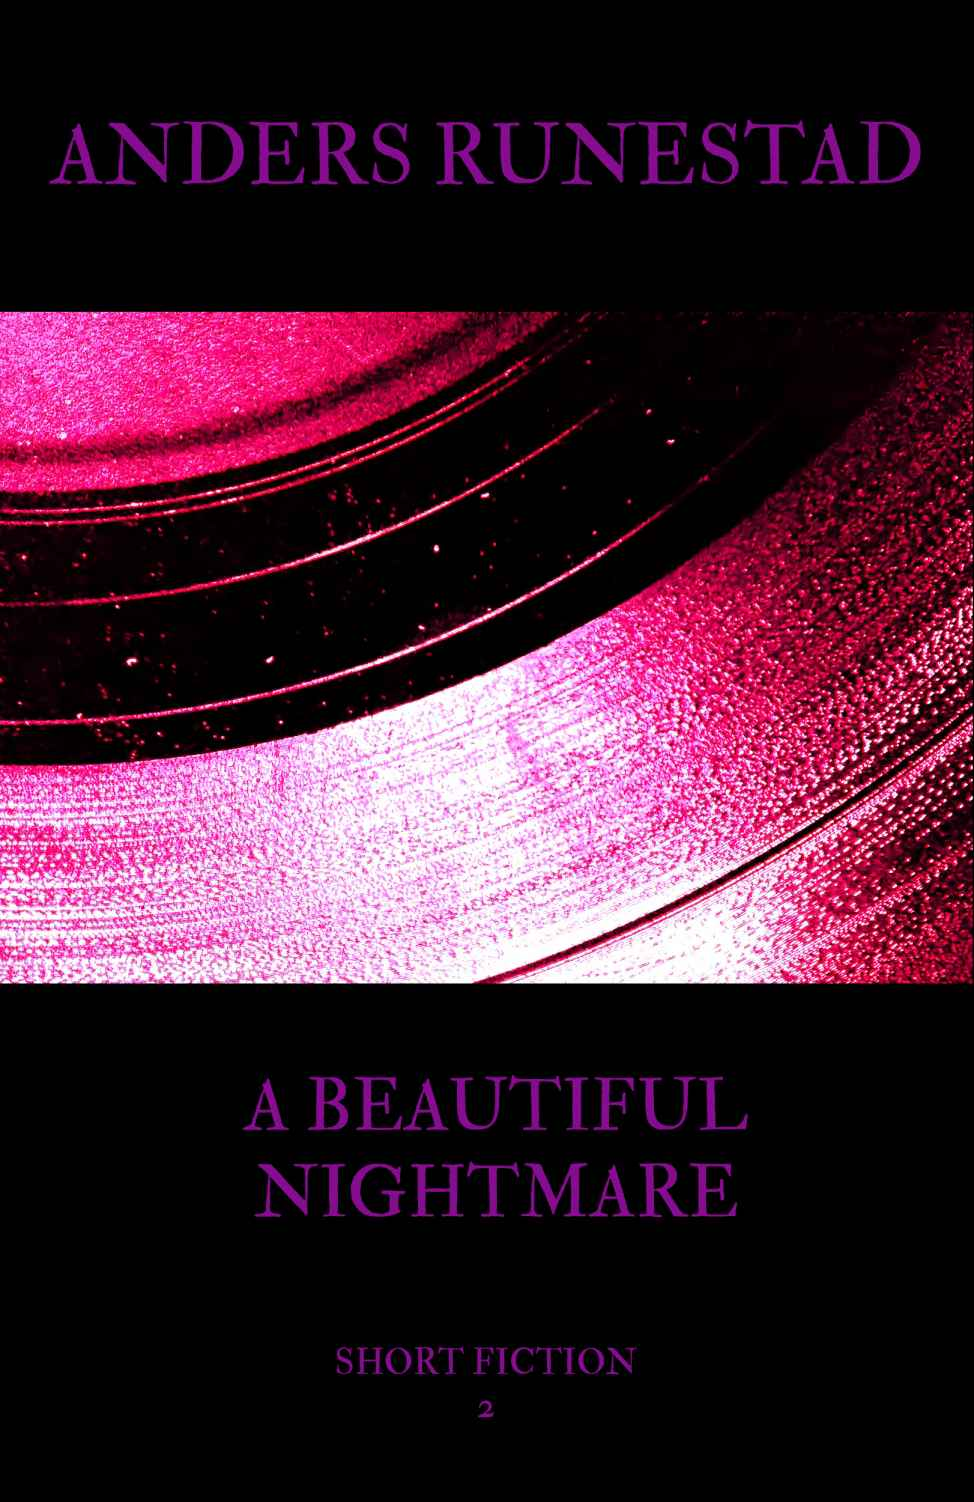 (3) A Beautiful Nightmare